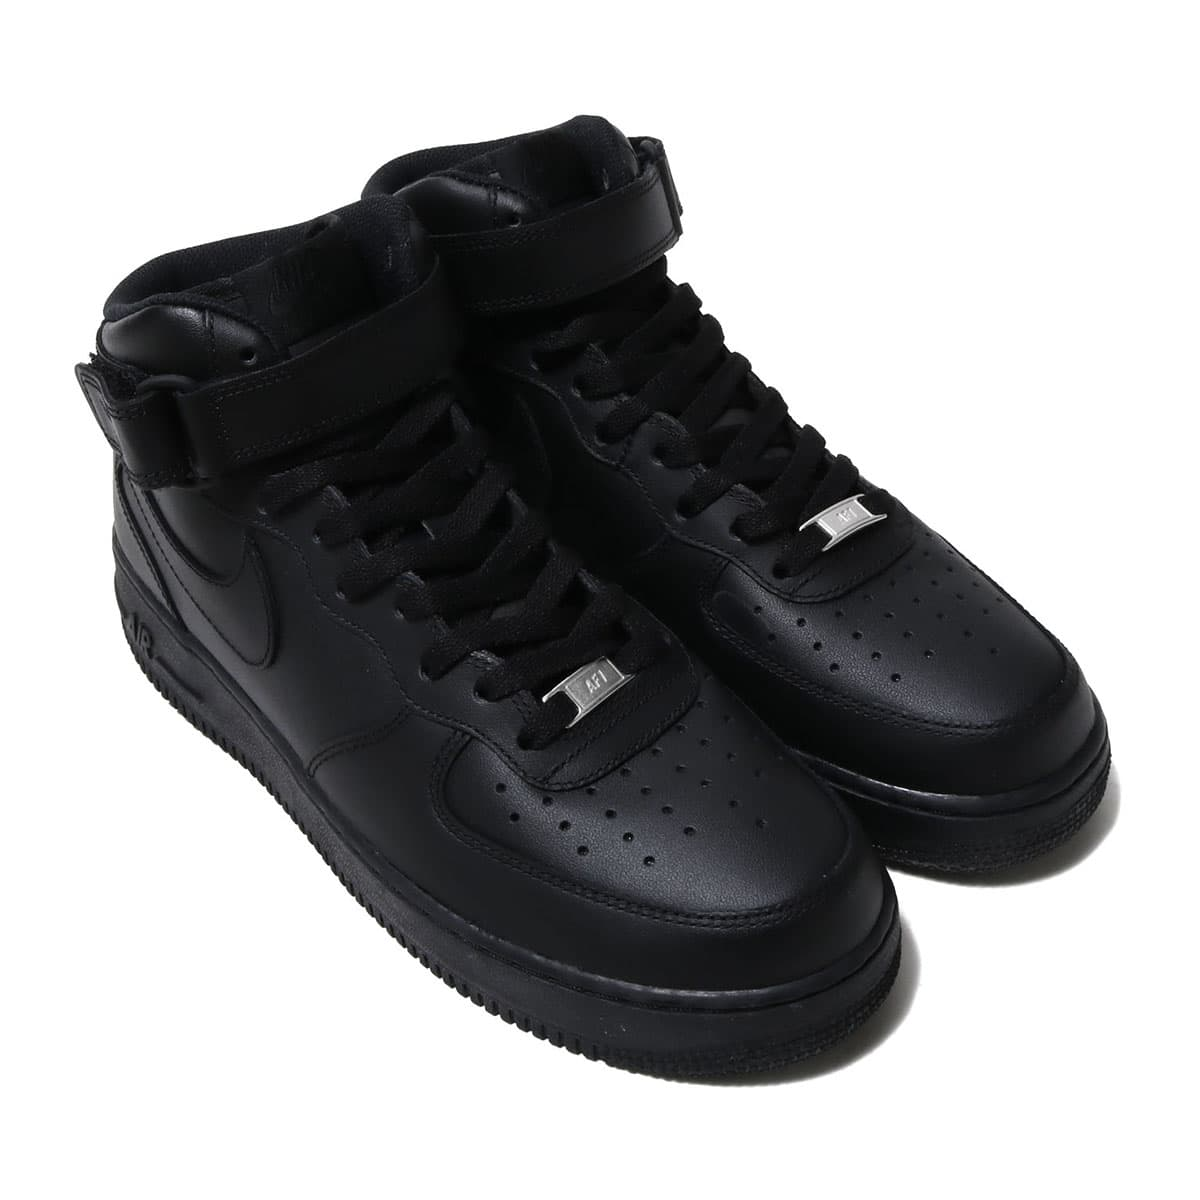 NIKE AIR FORCE 1 MID '07 BLACK/BLACK 18FW-I_photo_large